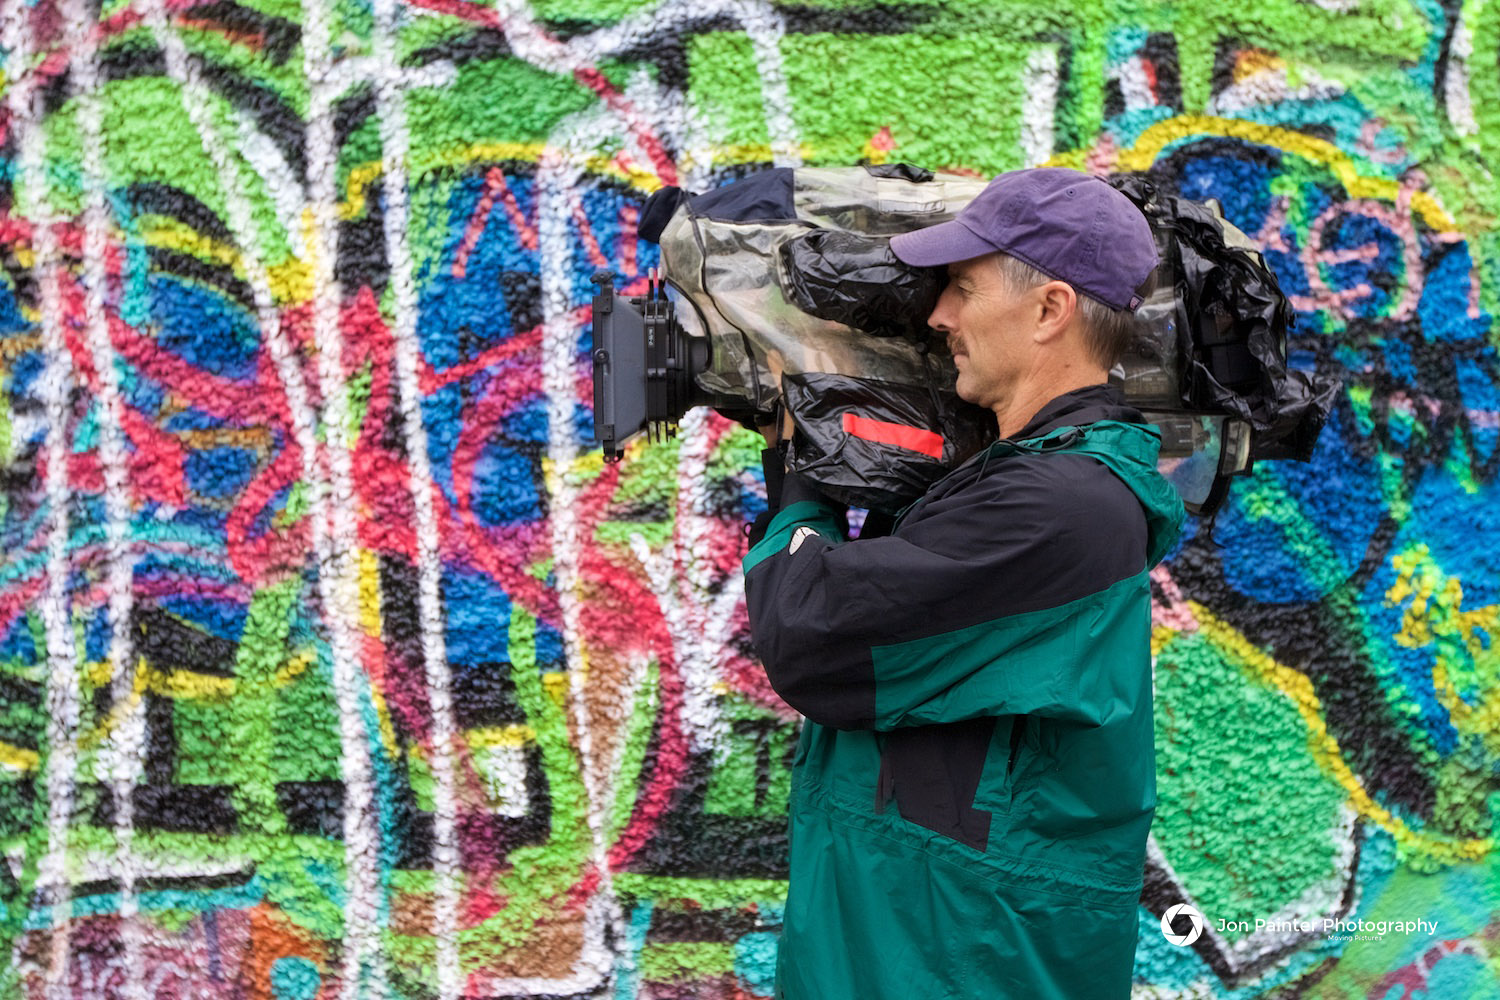 Shooting at Windmill Lane - Destination Golf: Ireland